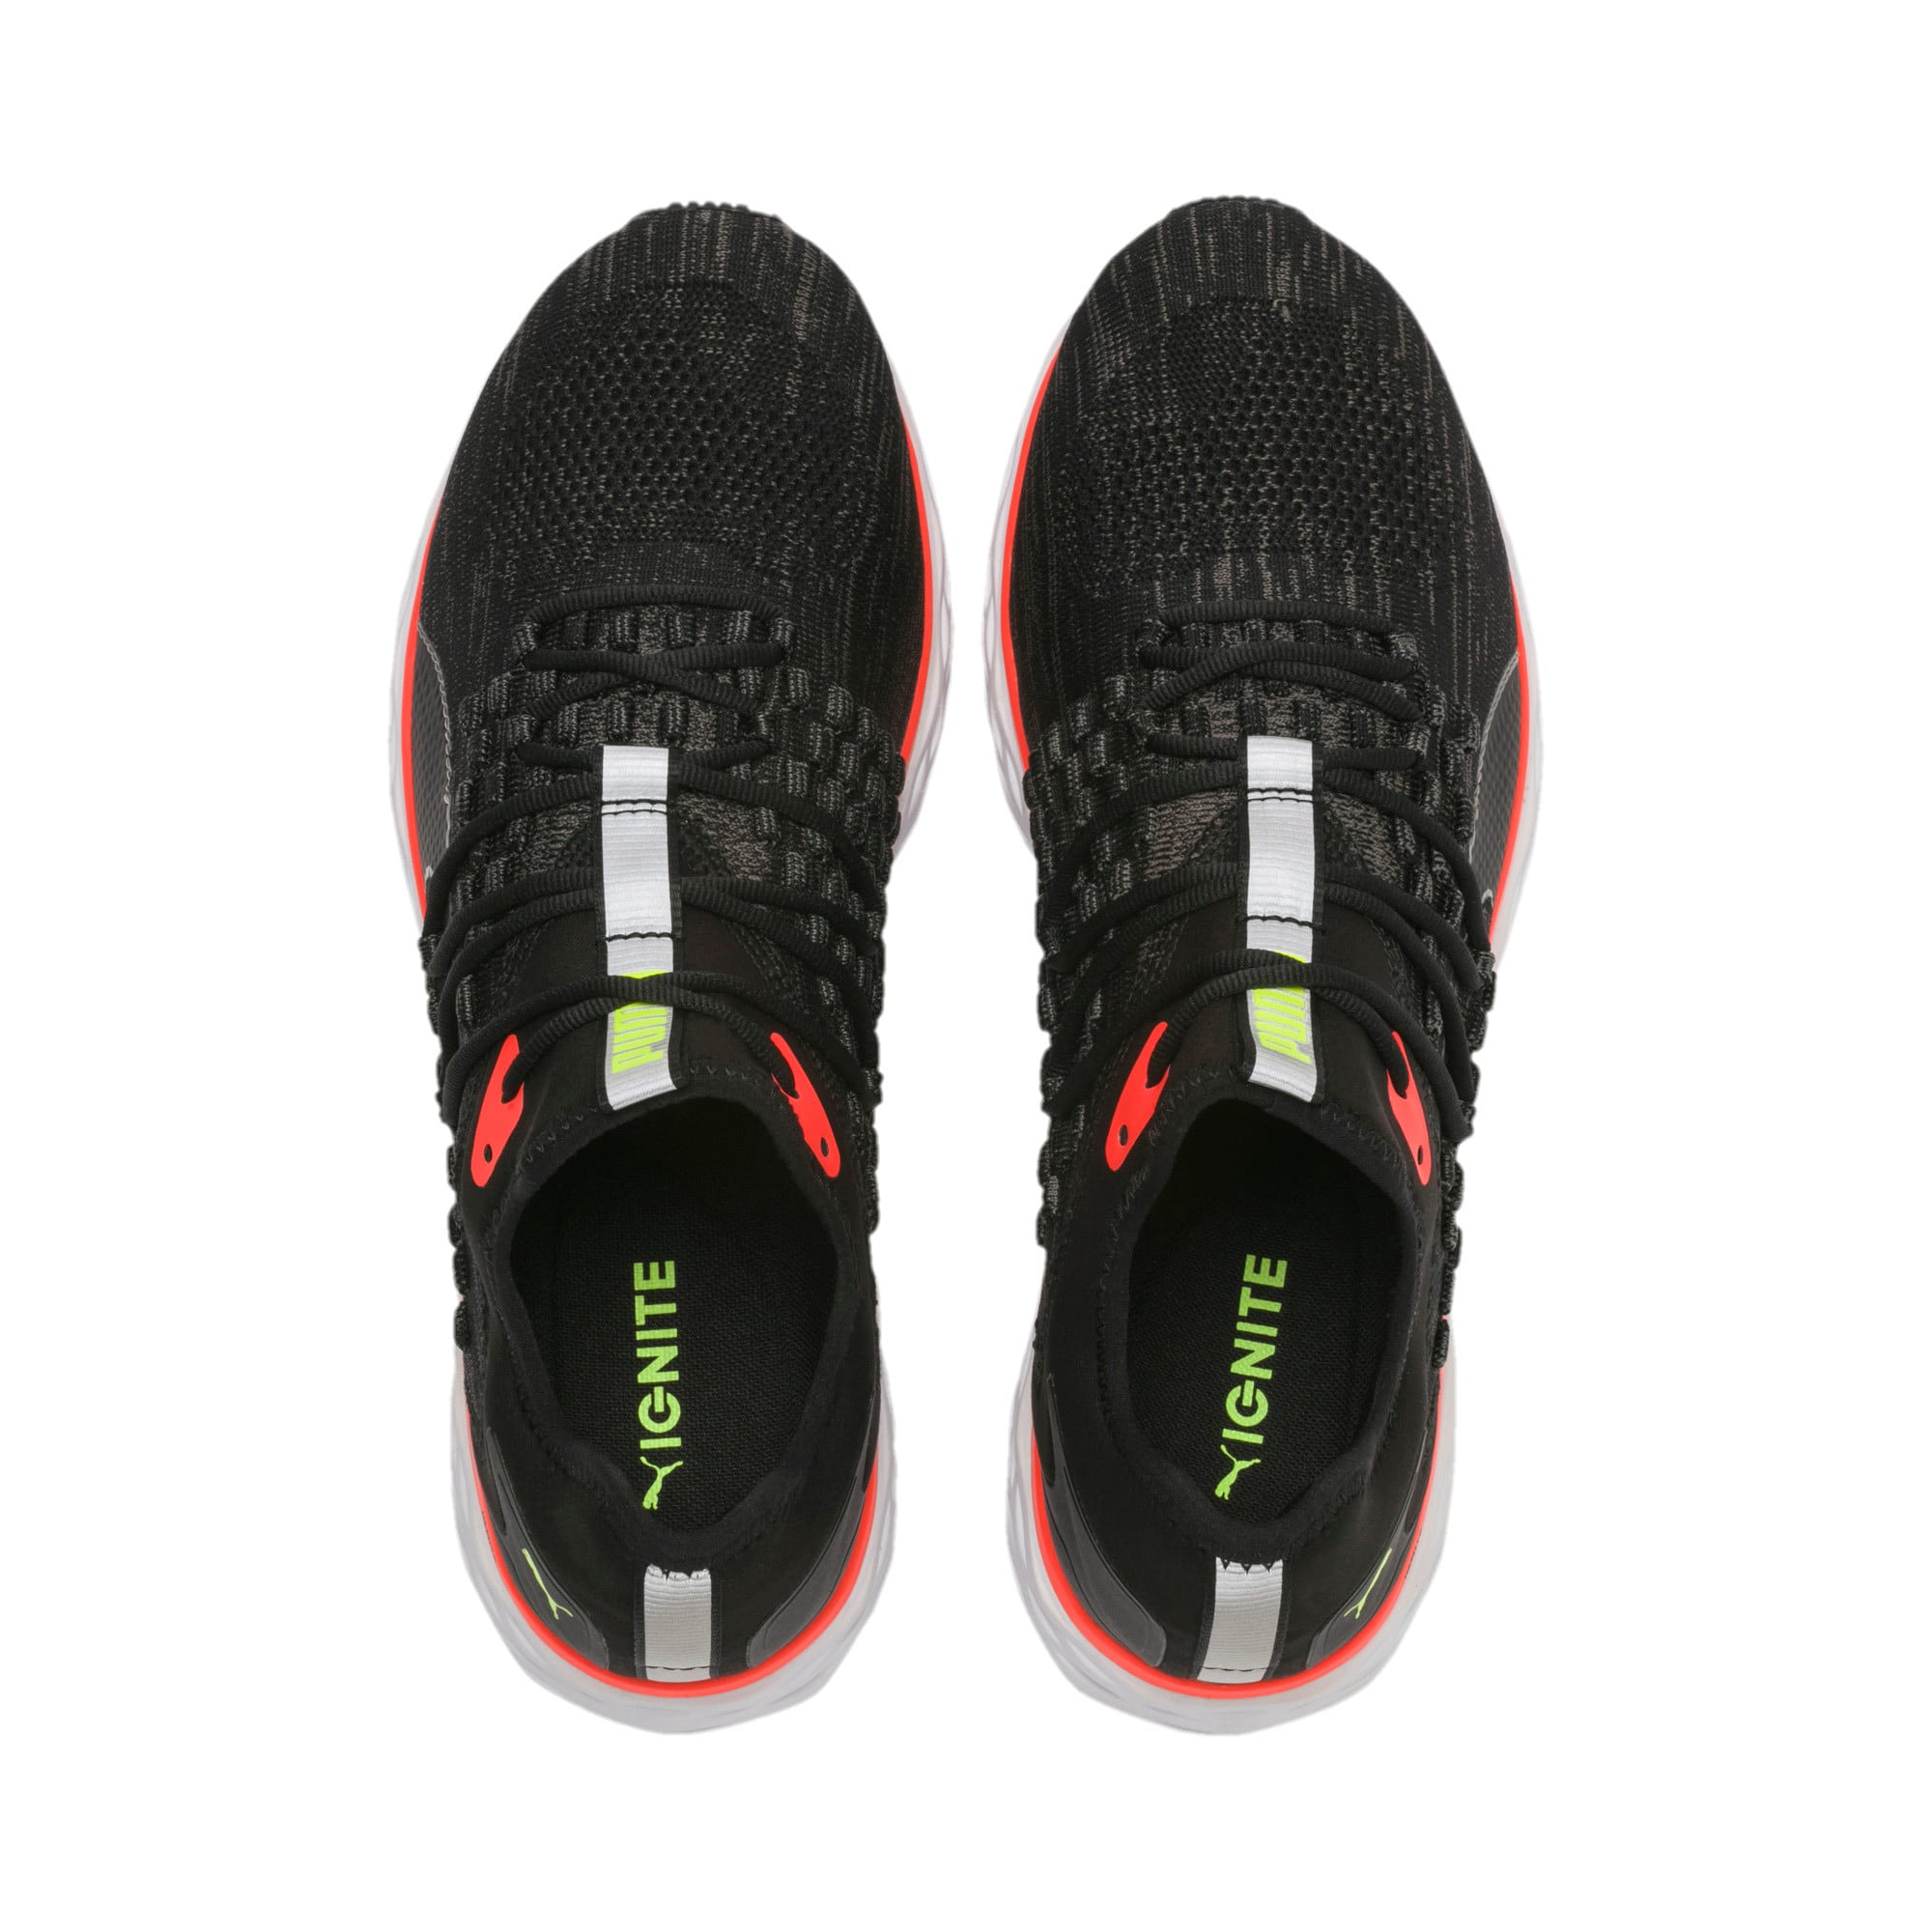 Thumbnail 7 of SPEED FUSEFIT Men's Running Shoes, Puma Black-Nrgy Red, medium